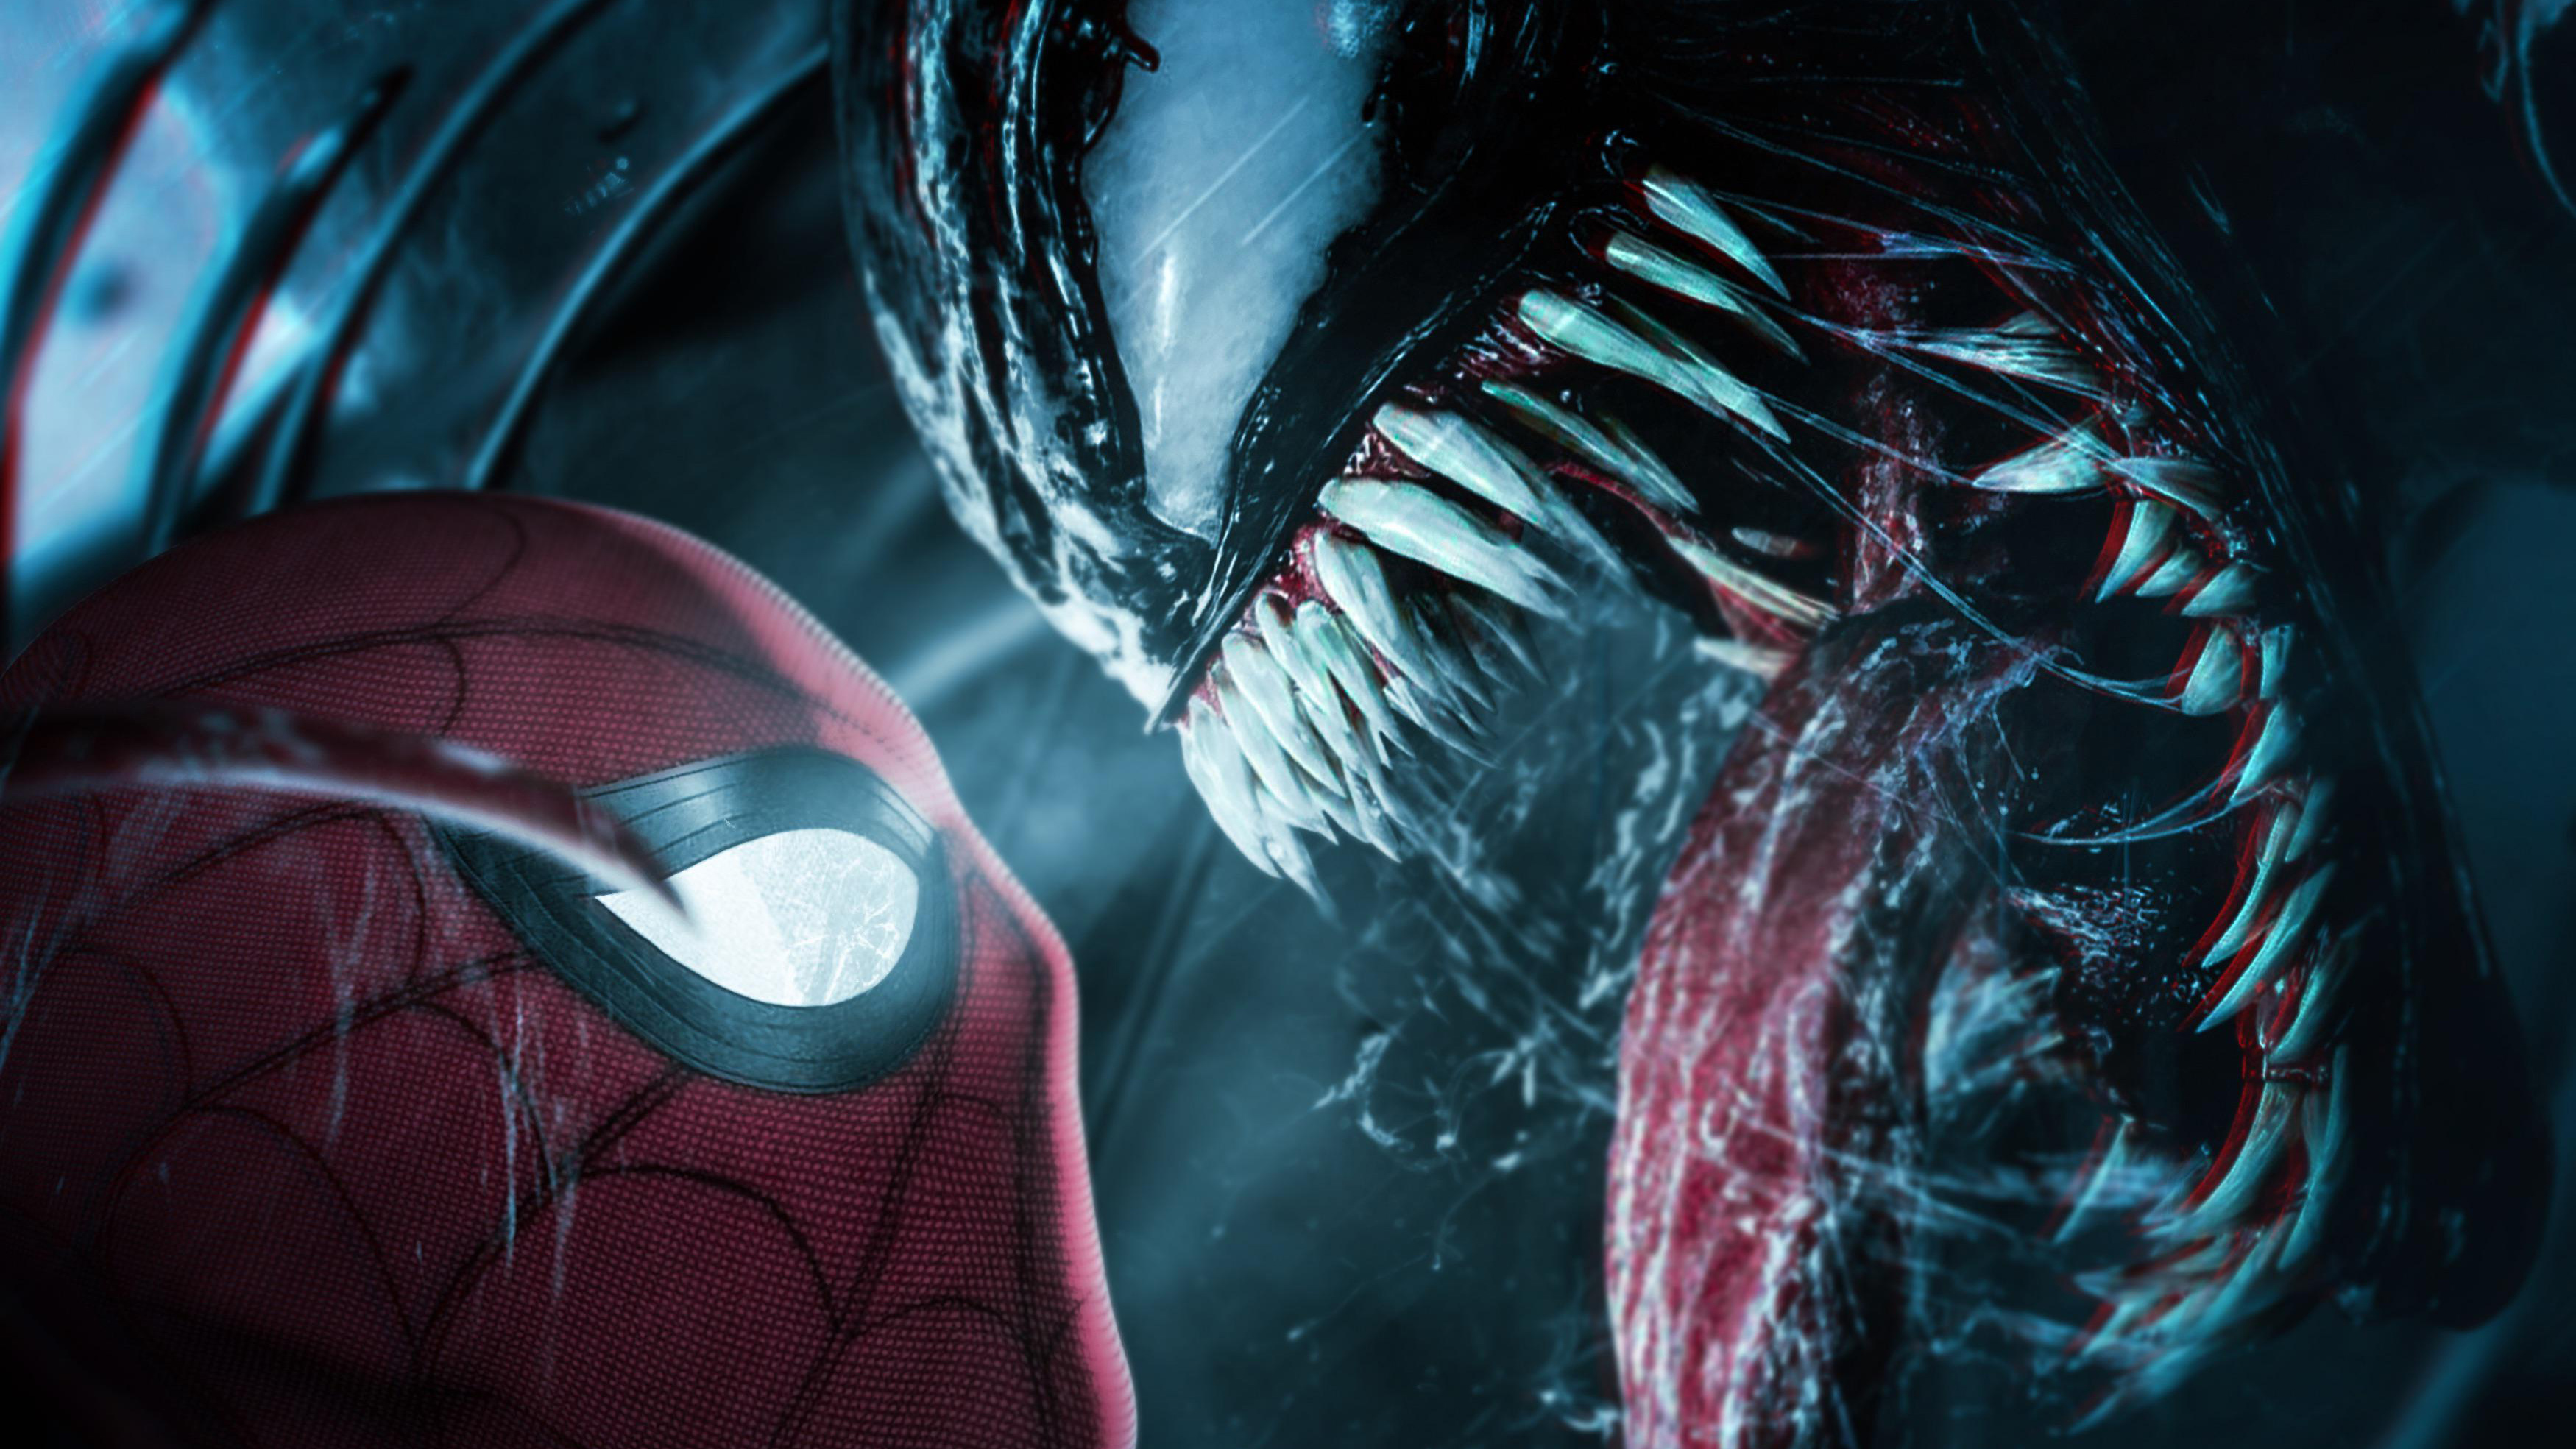 Spiderman Meets Venom 4k Hd Superheroes 4k Wallpapers Images Backgrounds Photos And Pictures